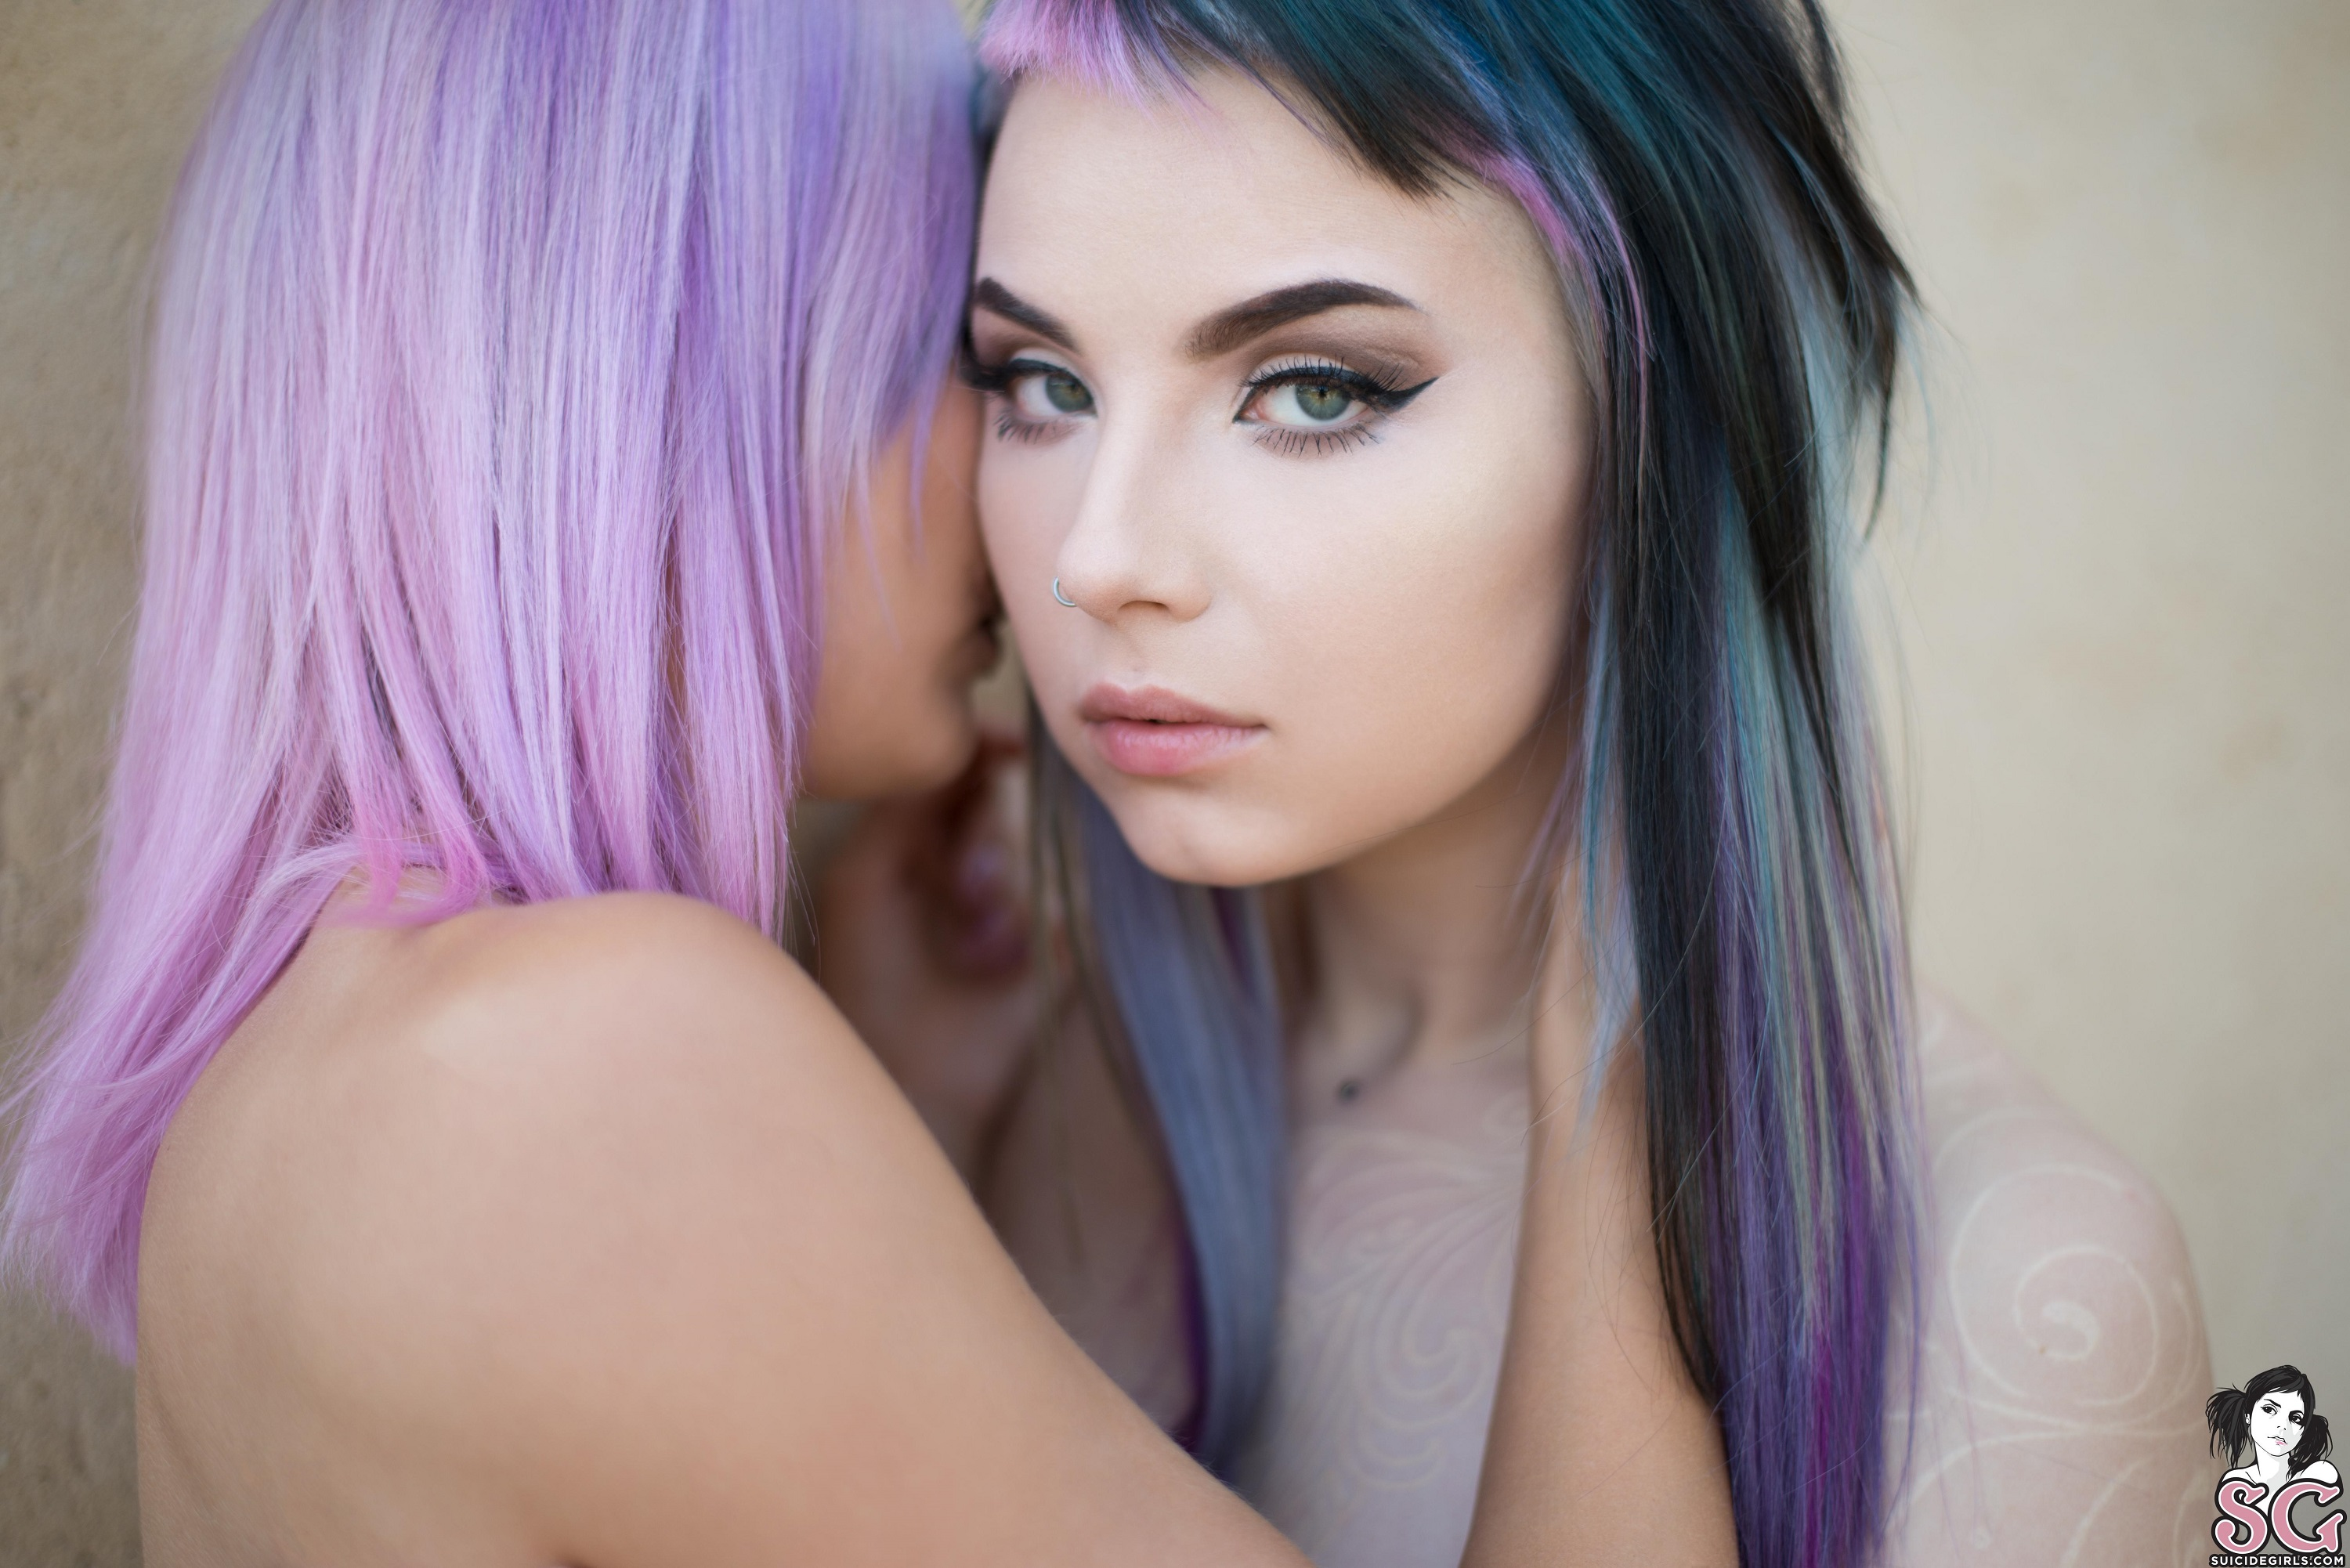 People 3000x2002 Indigo Suicide Karanlit Suicide women model outdoors dyed hair scarification nose rings face Suicide Girls fringe hair looking at viewer